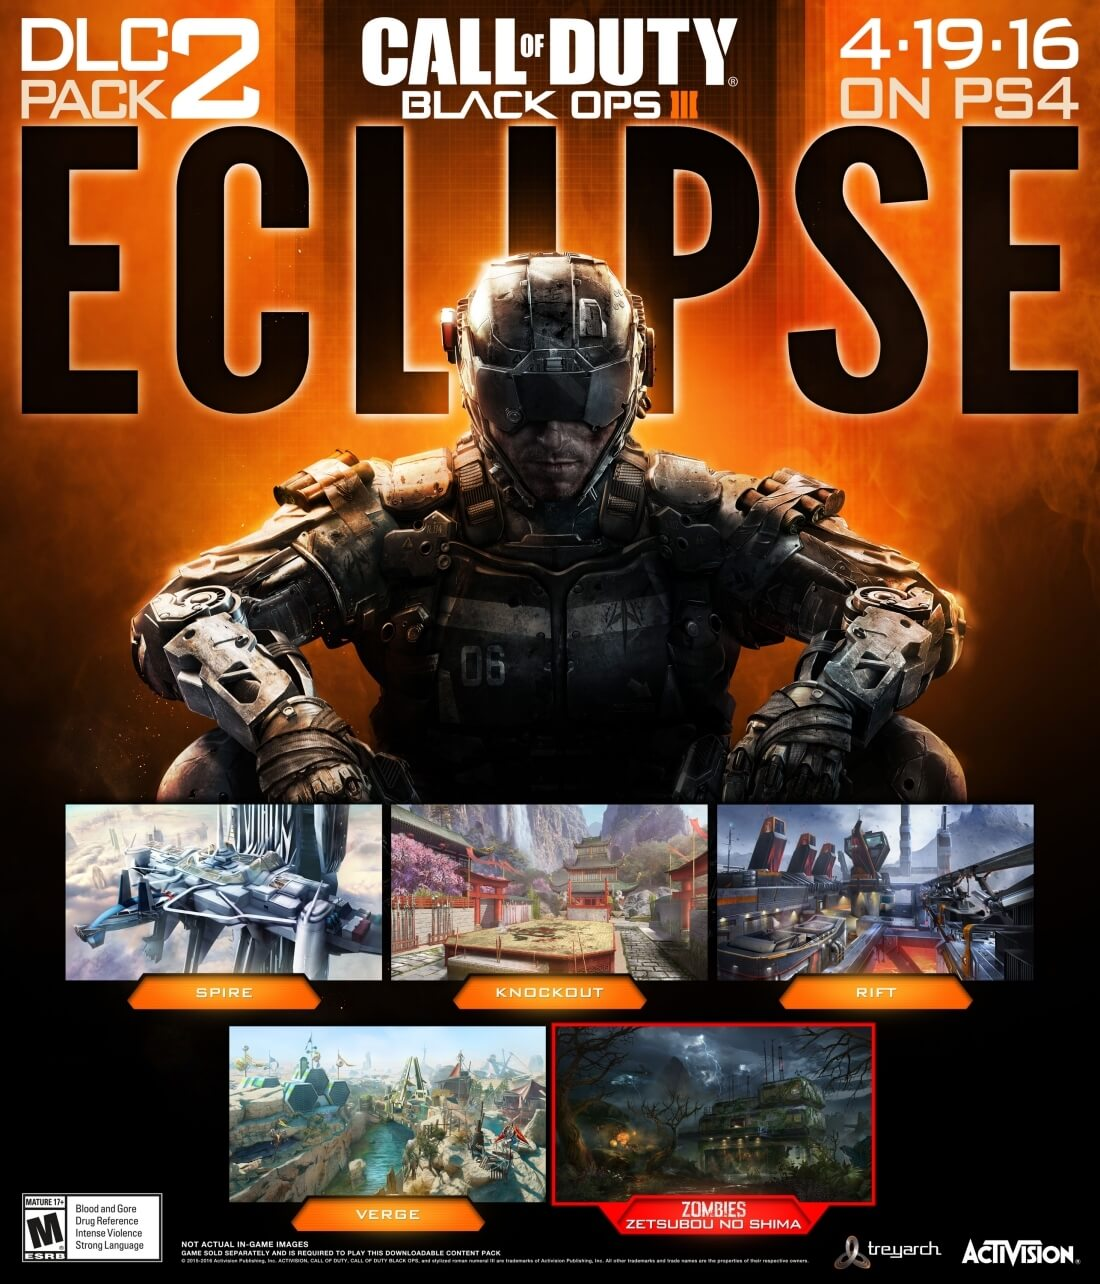 Black Ops III: Eclipse DLC includes four new multiplayer